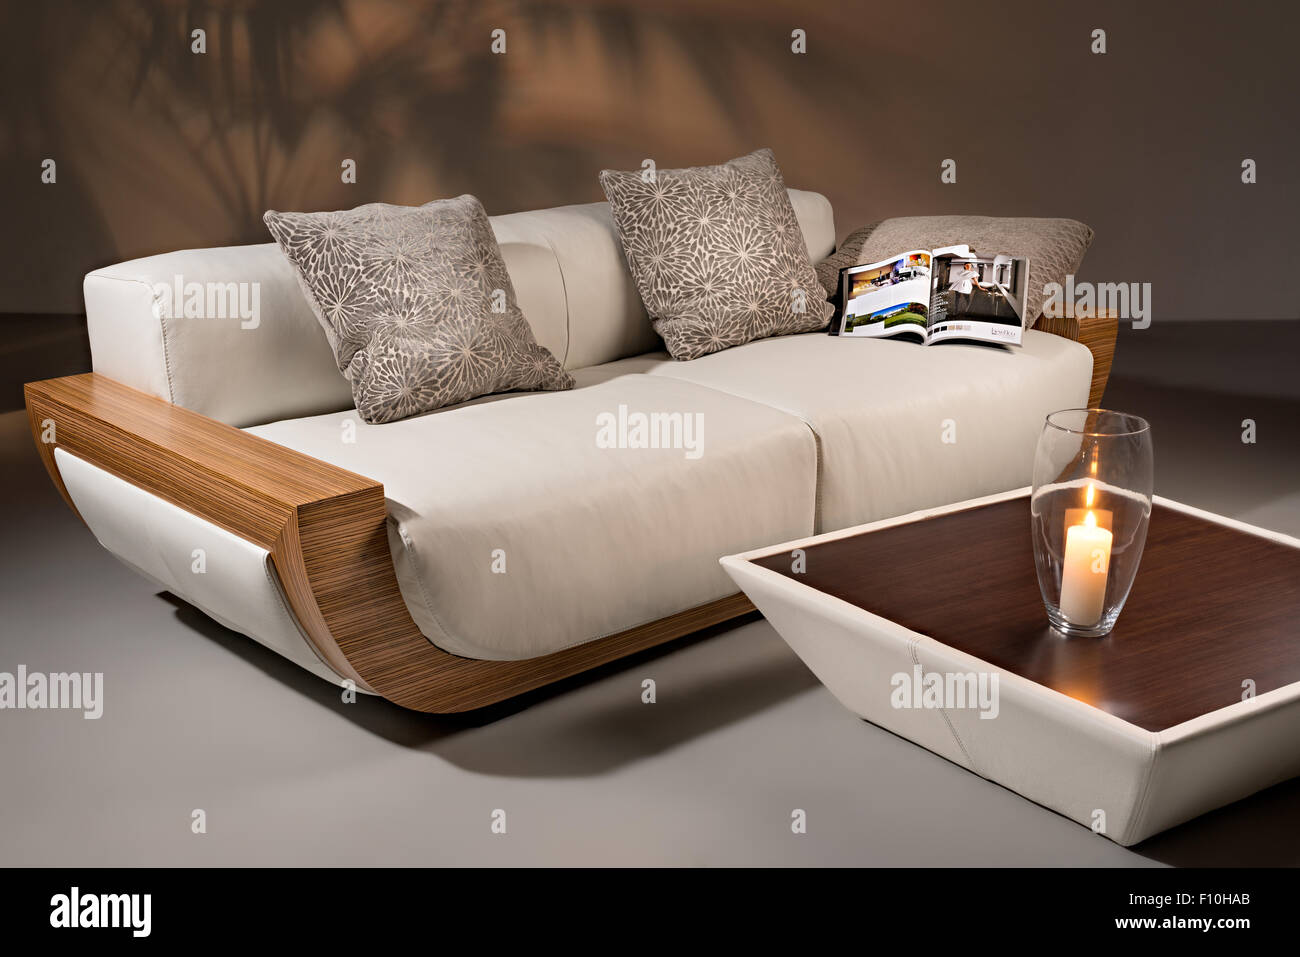 Bon A Sofa From Natural White Leather, Goose Down And Wooden Blocks Of Natural  Color, With Pillows, Journal And A Table With A Burni